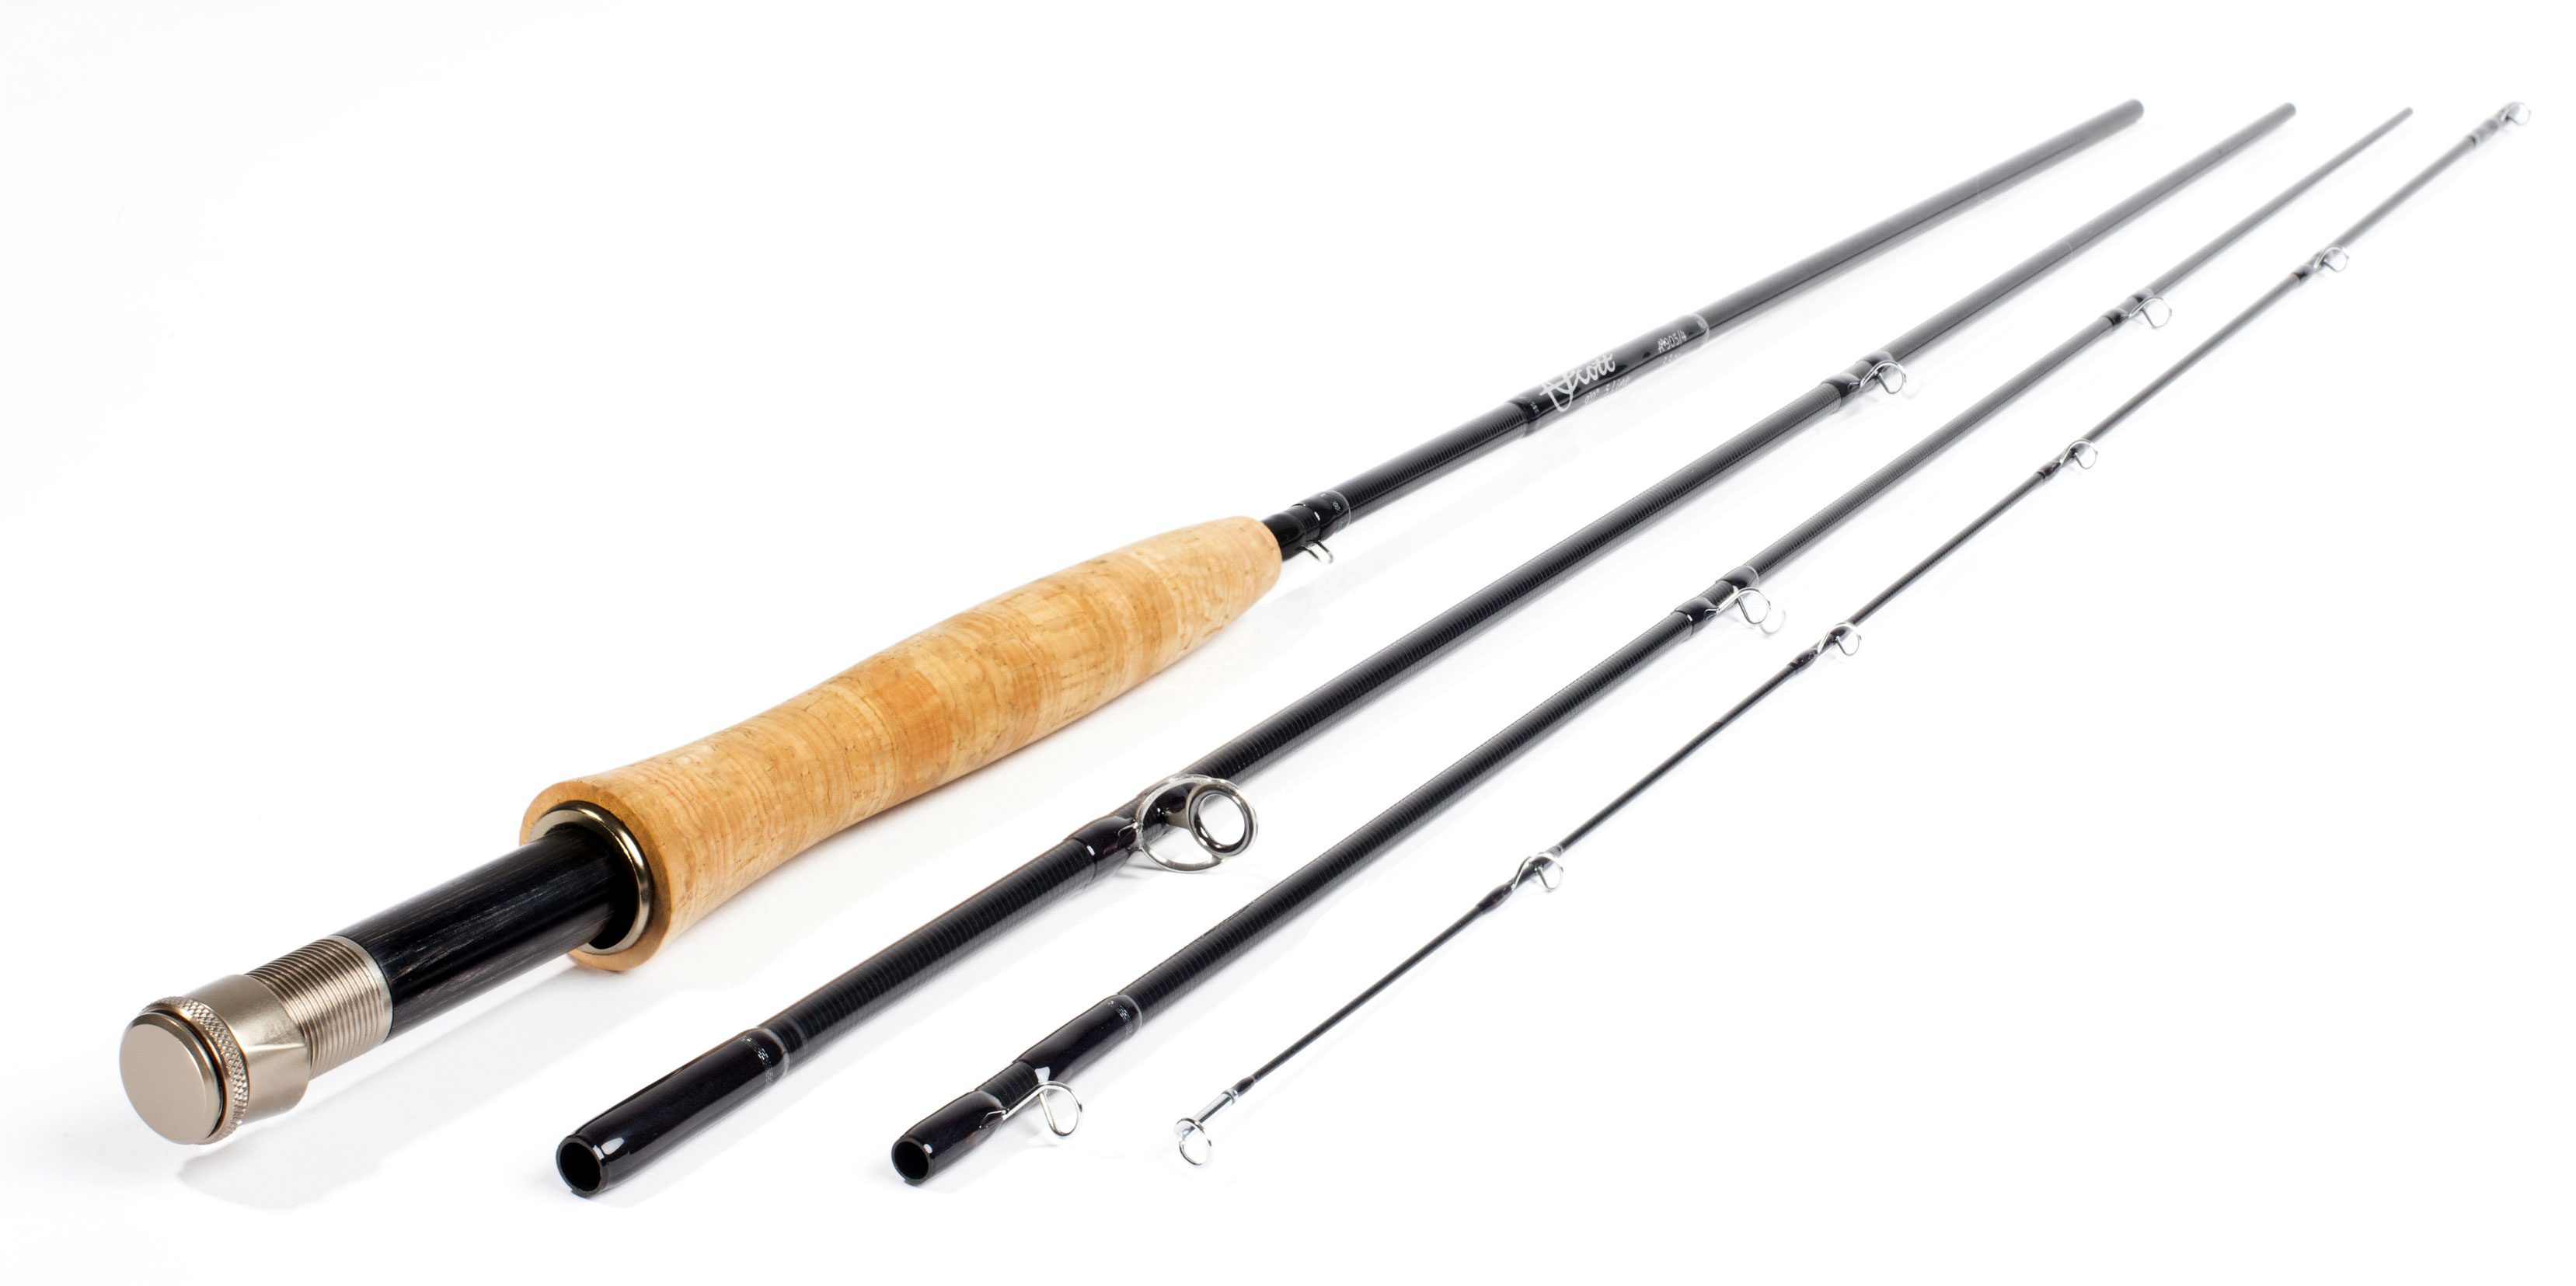 ... Fishing Tackle » Game Fishing Tackle » Fly Rods » Scott Fly Rods Fly Fishing Rods